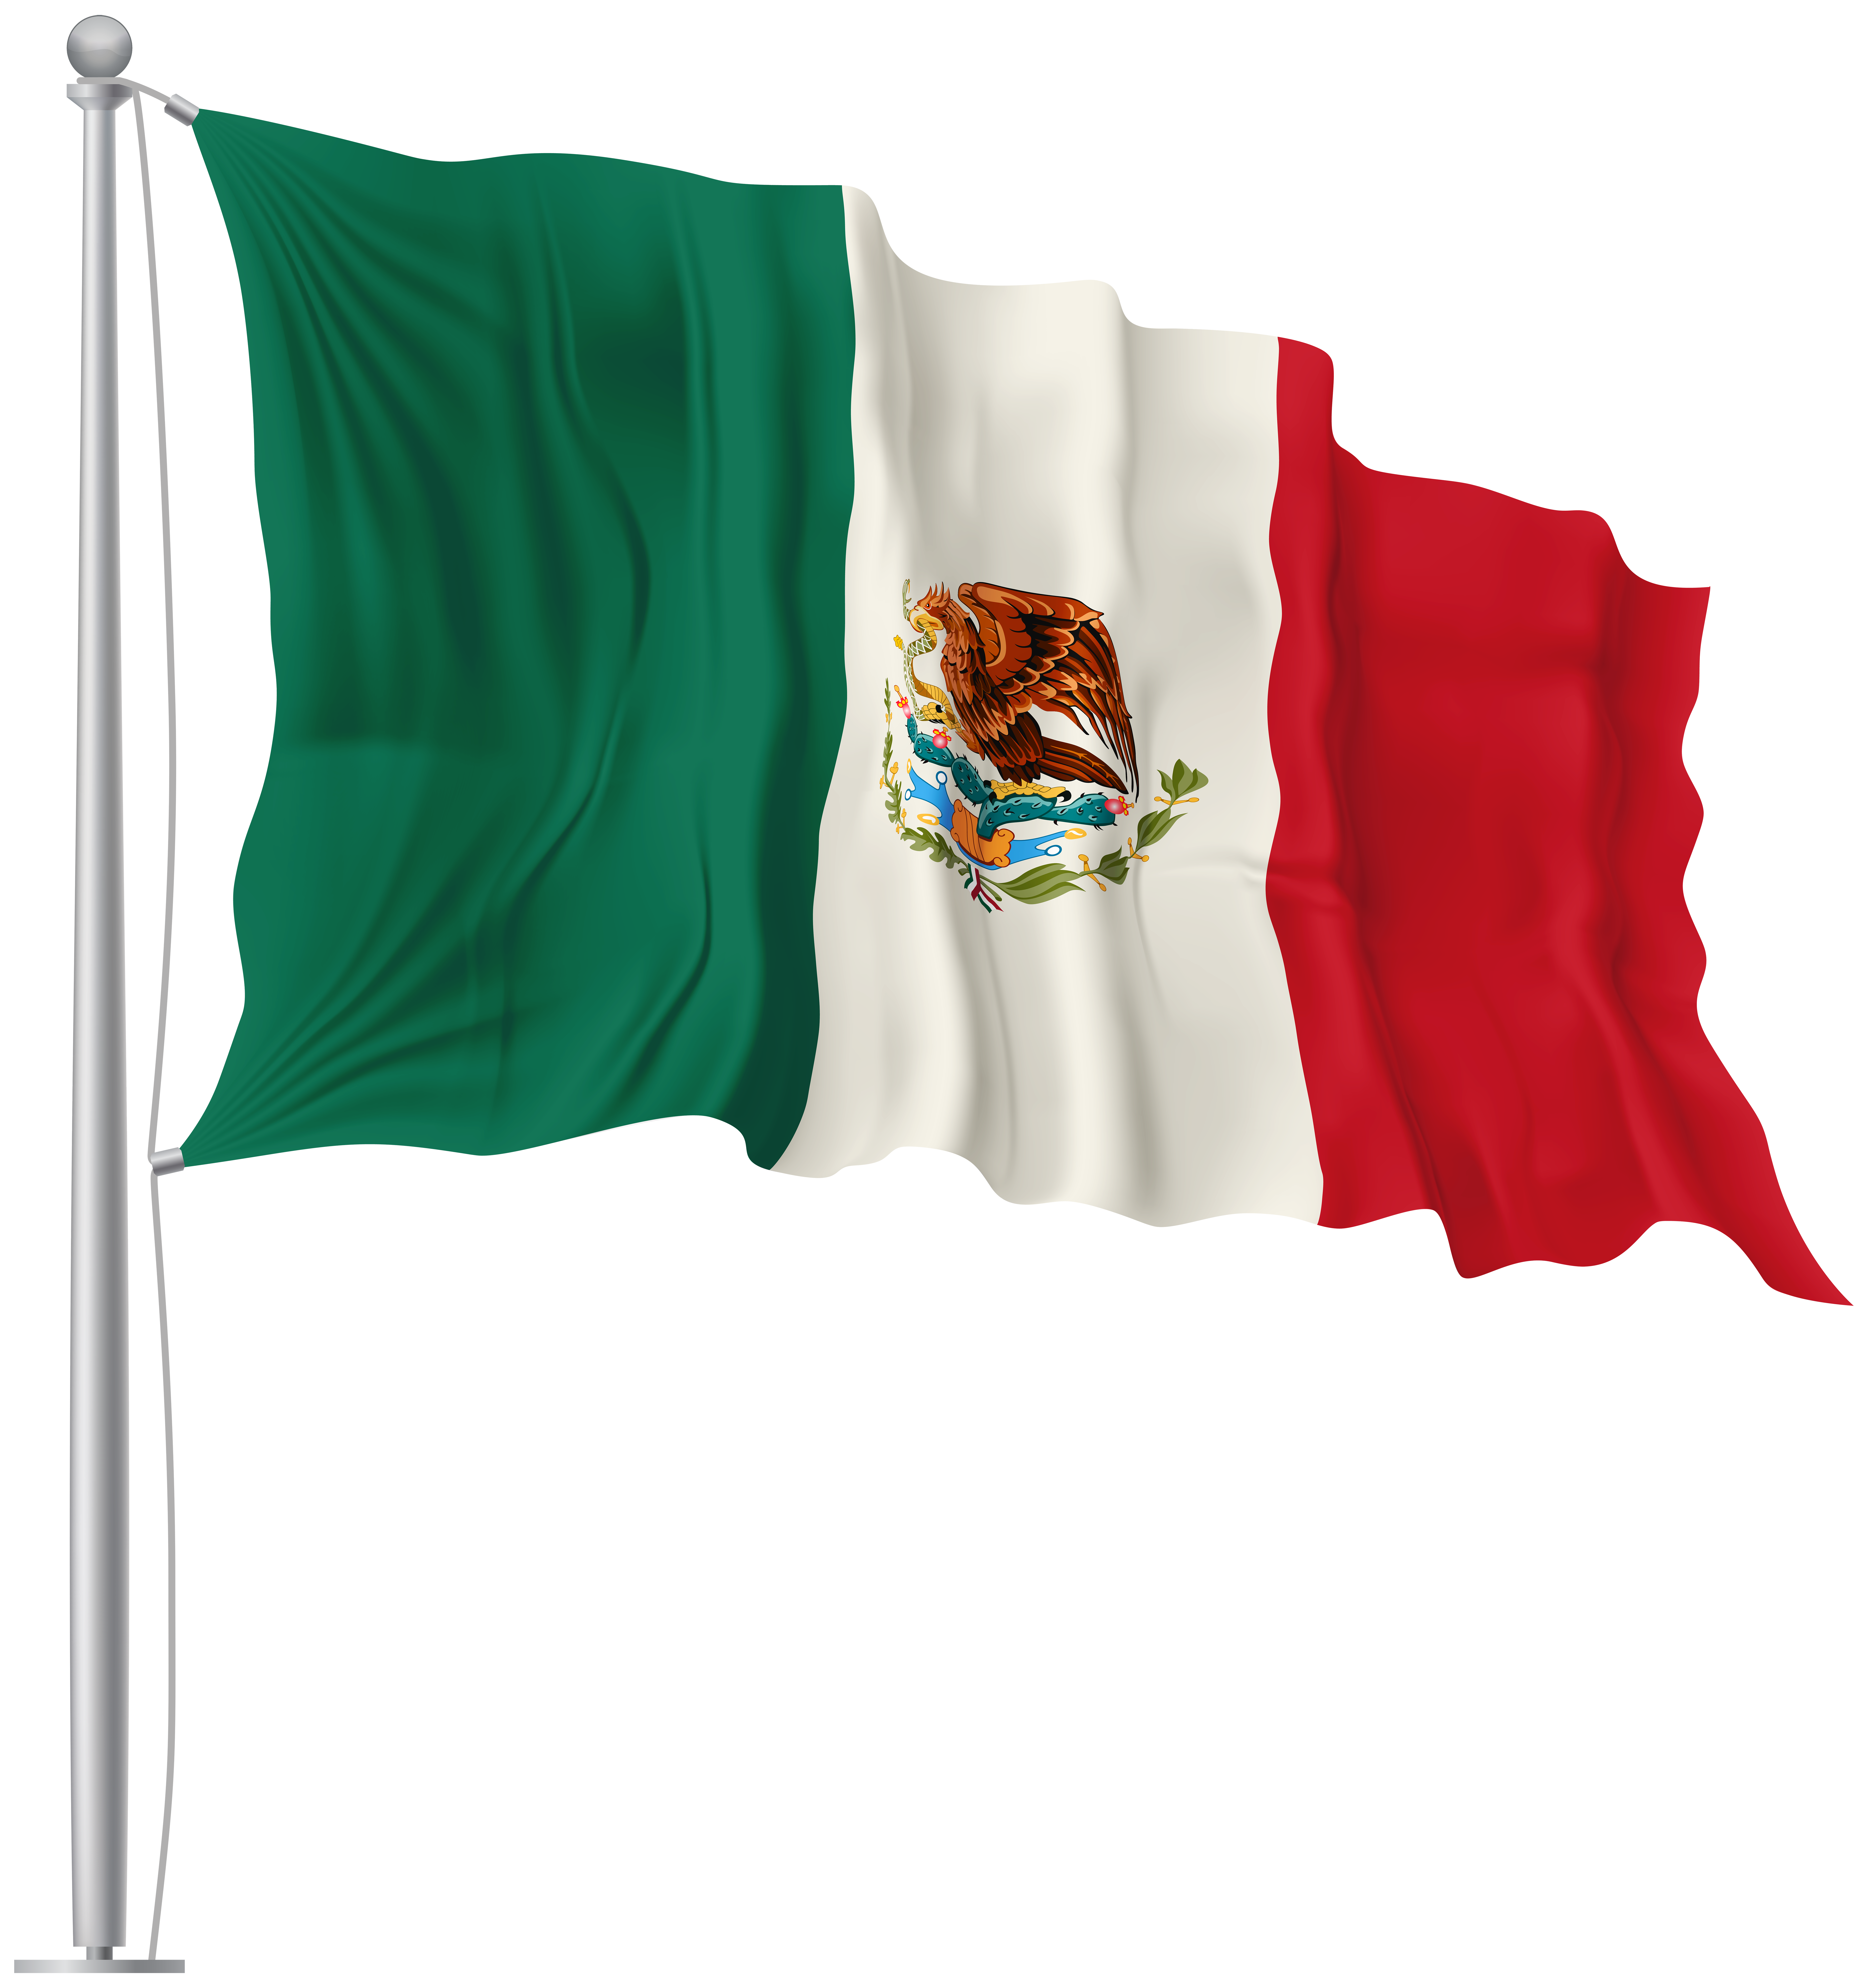 Mexico flag waving png. Image gallery yopriceville high